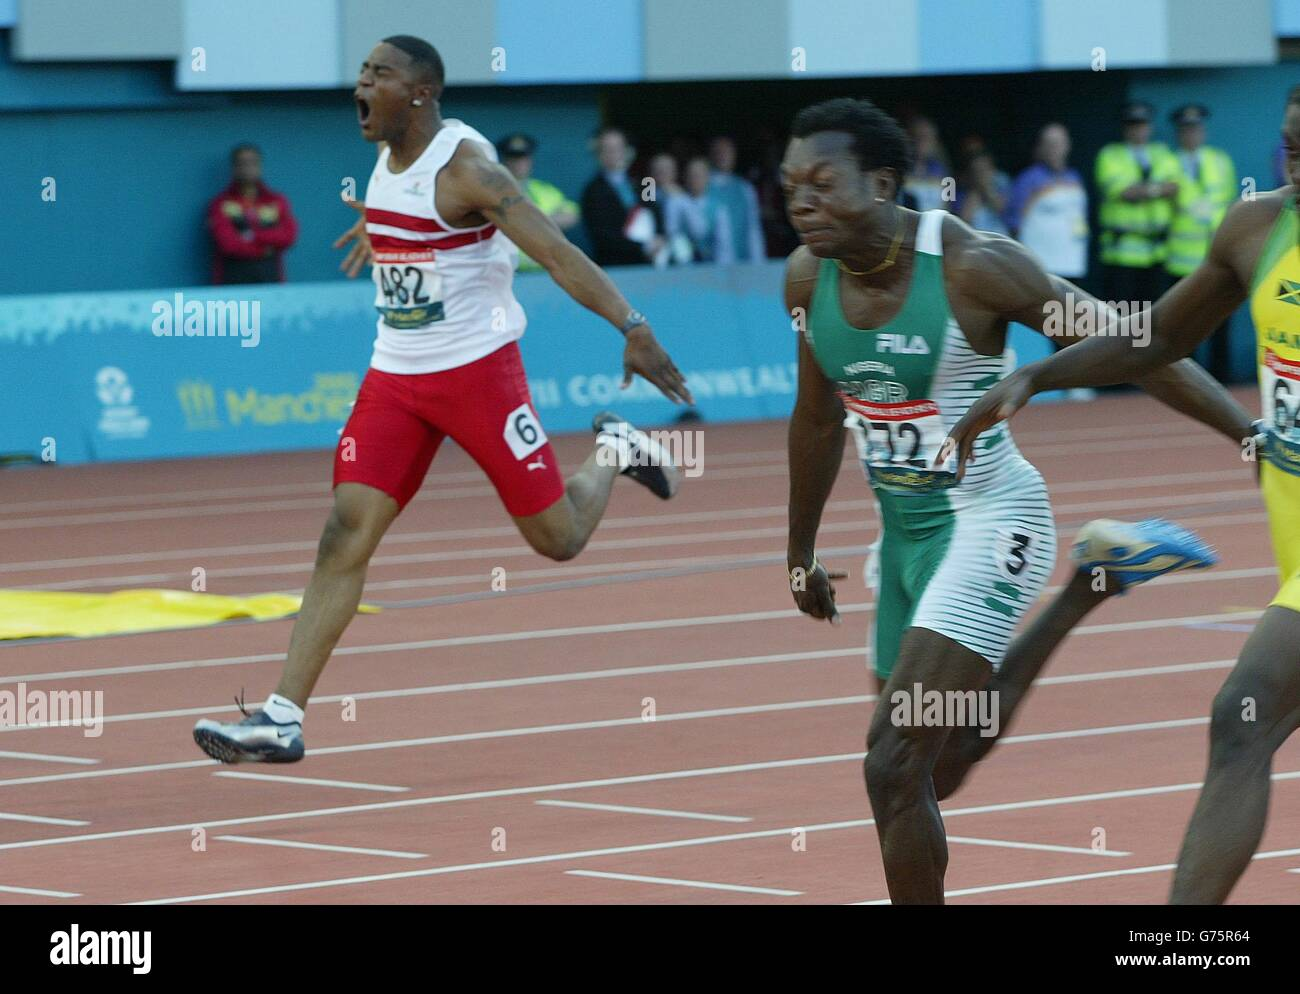 100m Men's Final - England's Mark Lewis-Francis (Far R) - Stock Image